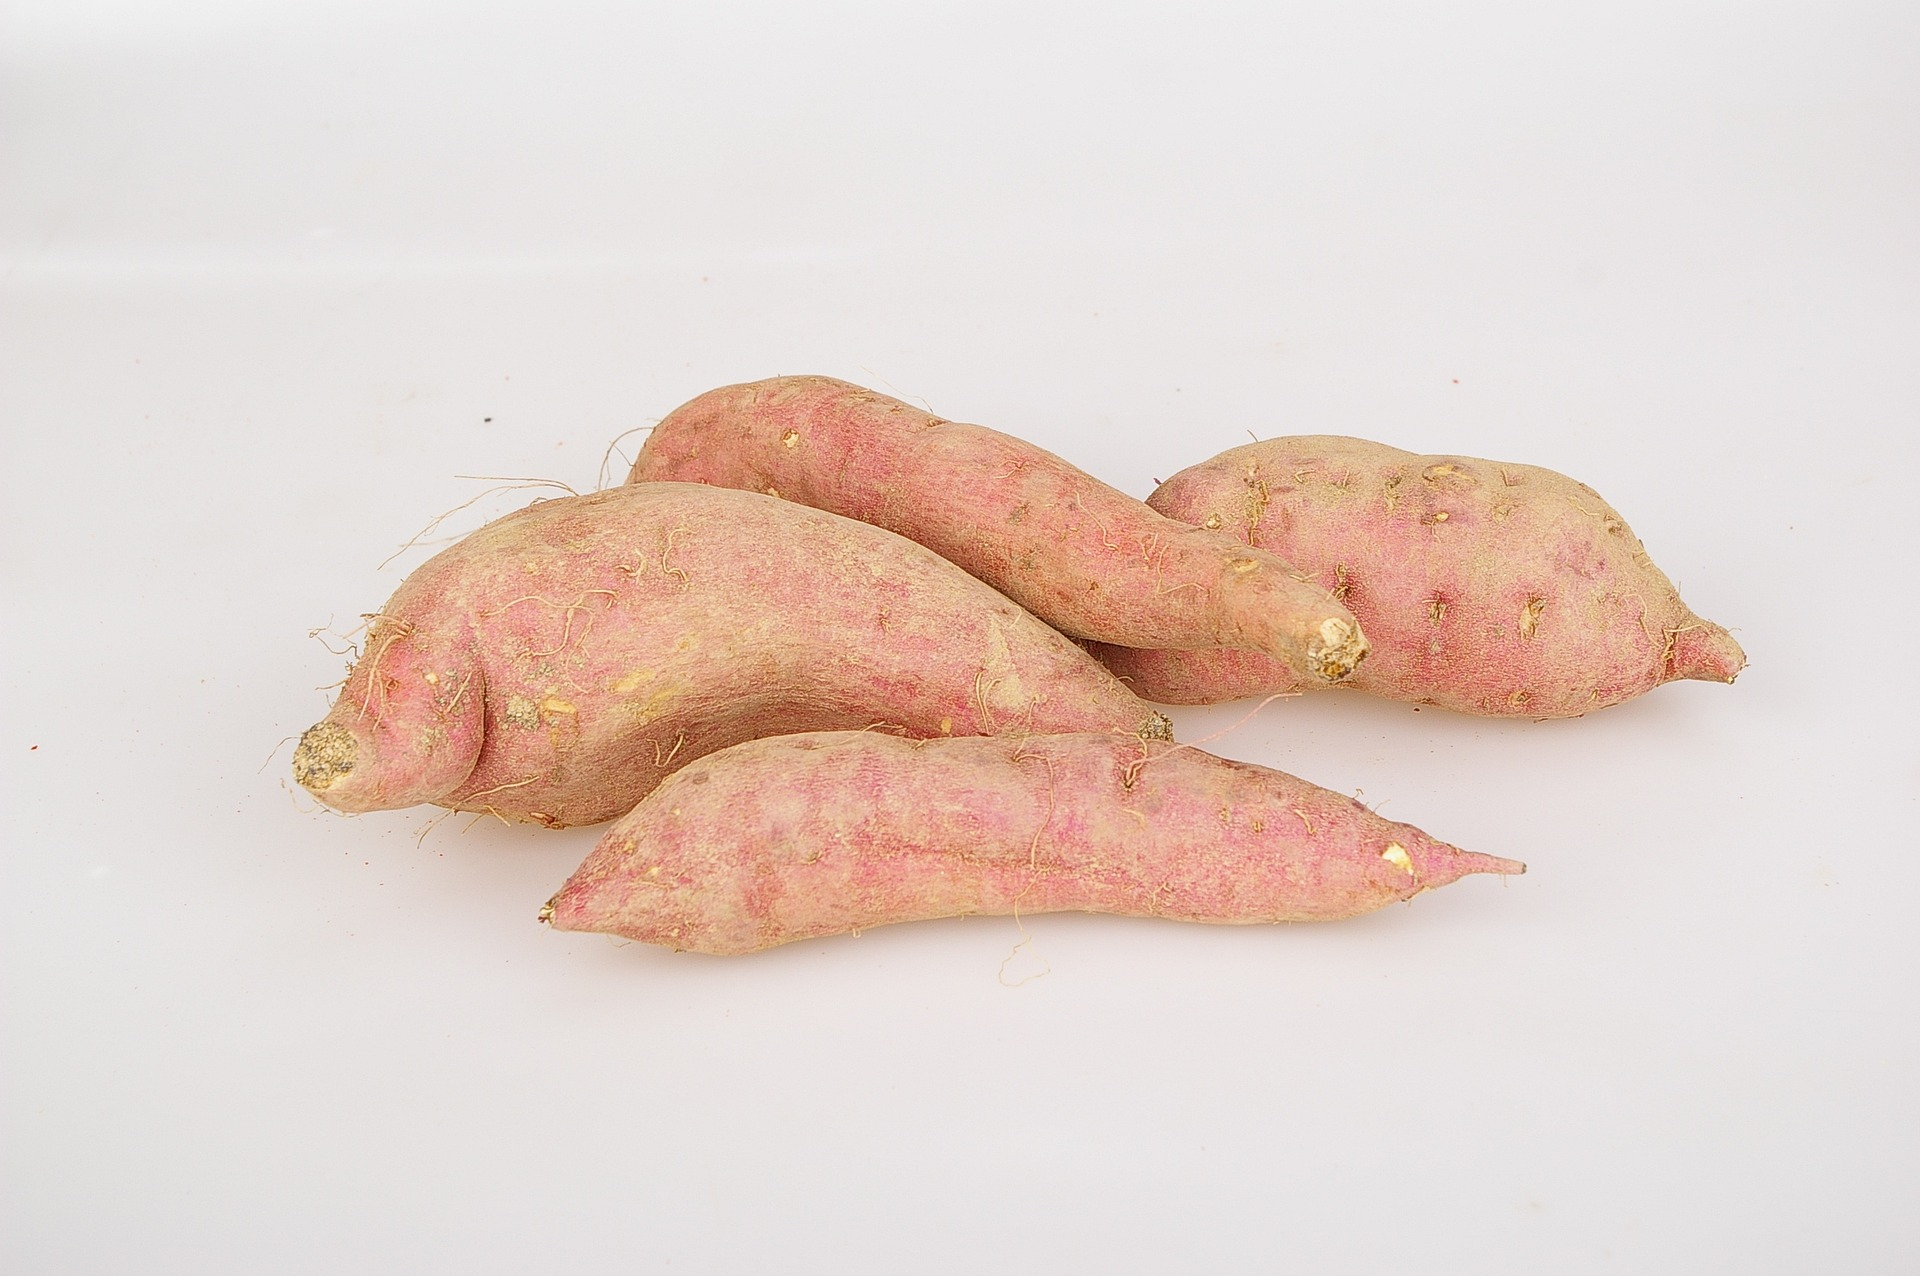 sweet-potato-936680_1920.jpg